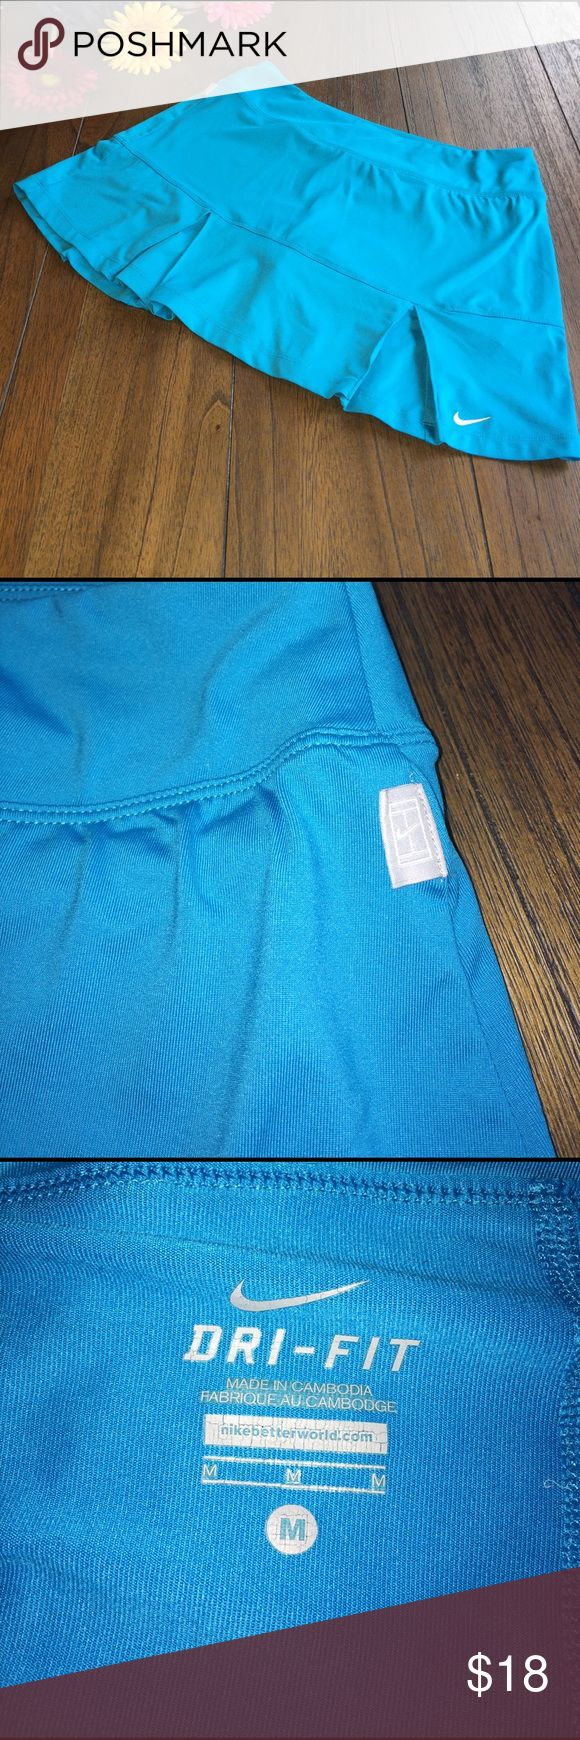 NIKE Tennis 🎾 Skirt Gently used NIKE tennis 🎾 skirt. Pics don't do the color justice--bright turquoise. Pleats at bottom. Built in compression shorts. Size Medium. Nike Skirts